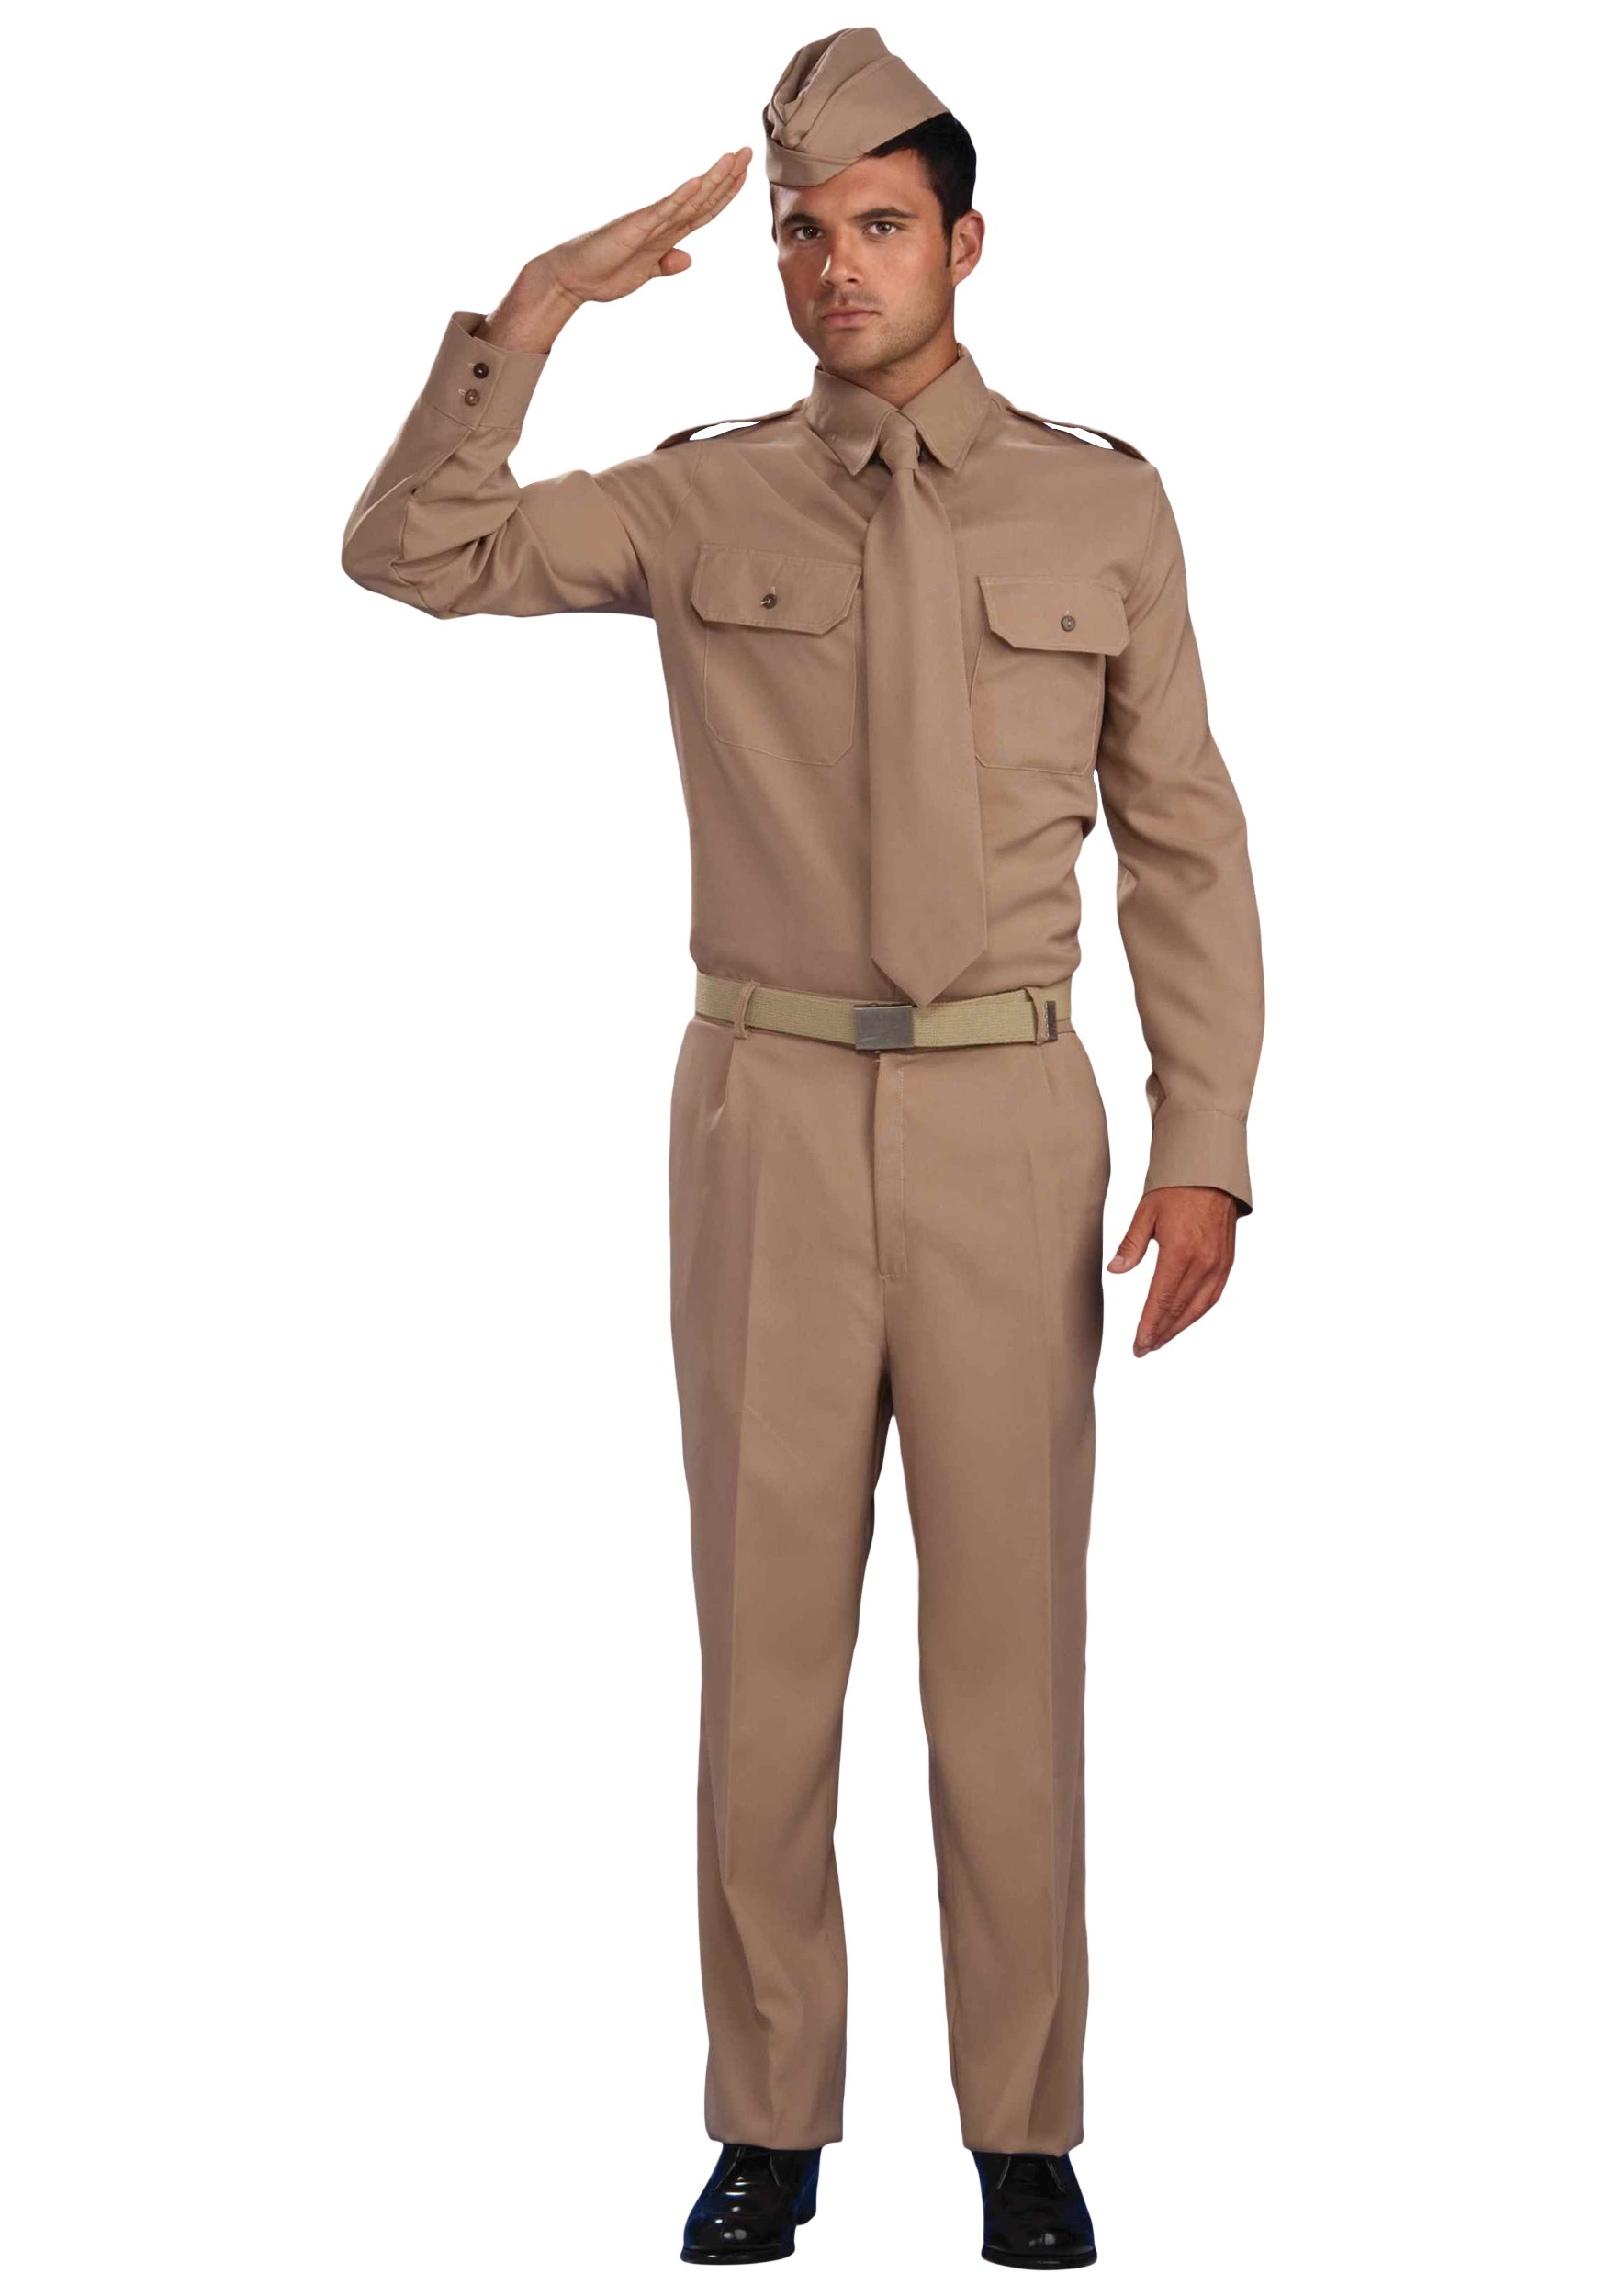 Cool Women In Military Uniforms Are Crossdressers And Loathsome To